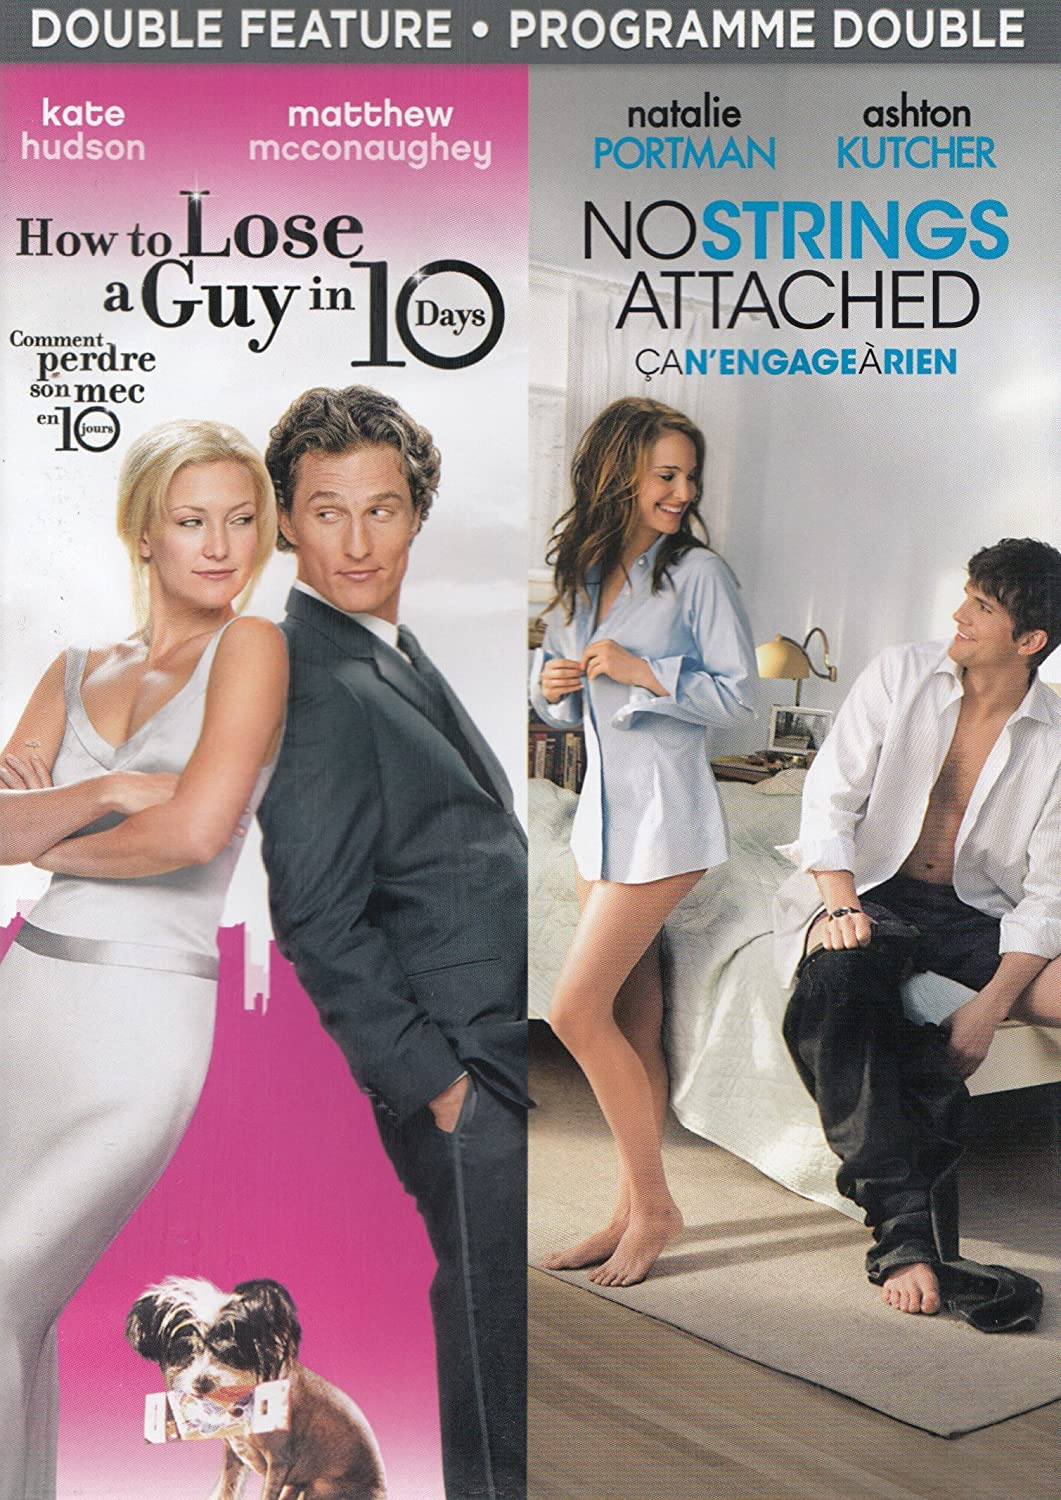 How to Lose a Guy in 10 Days / No Strings Attached Double